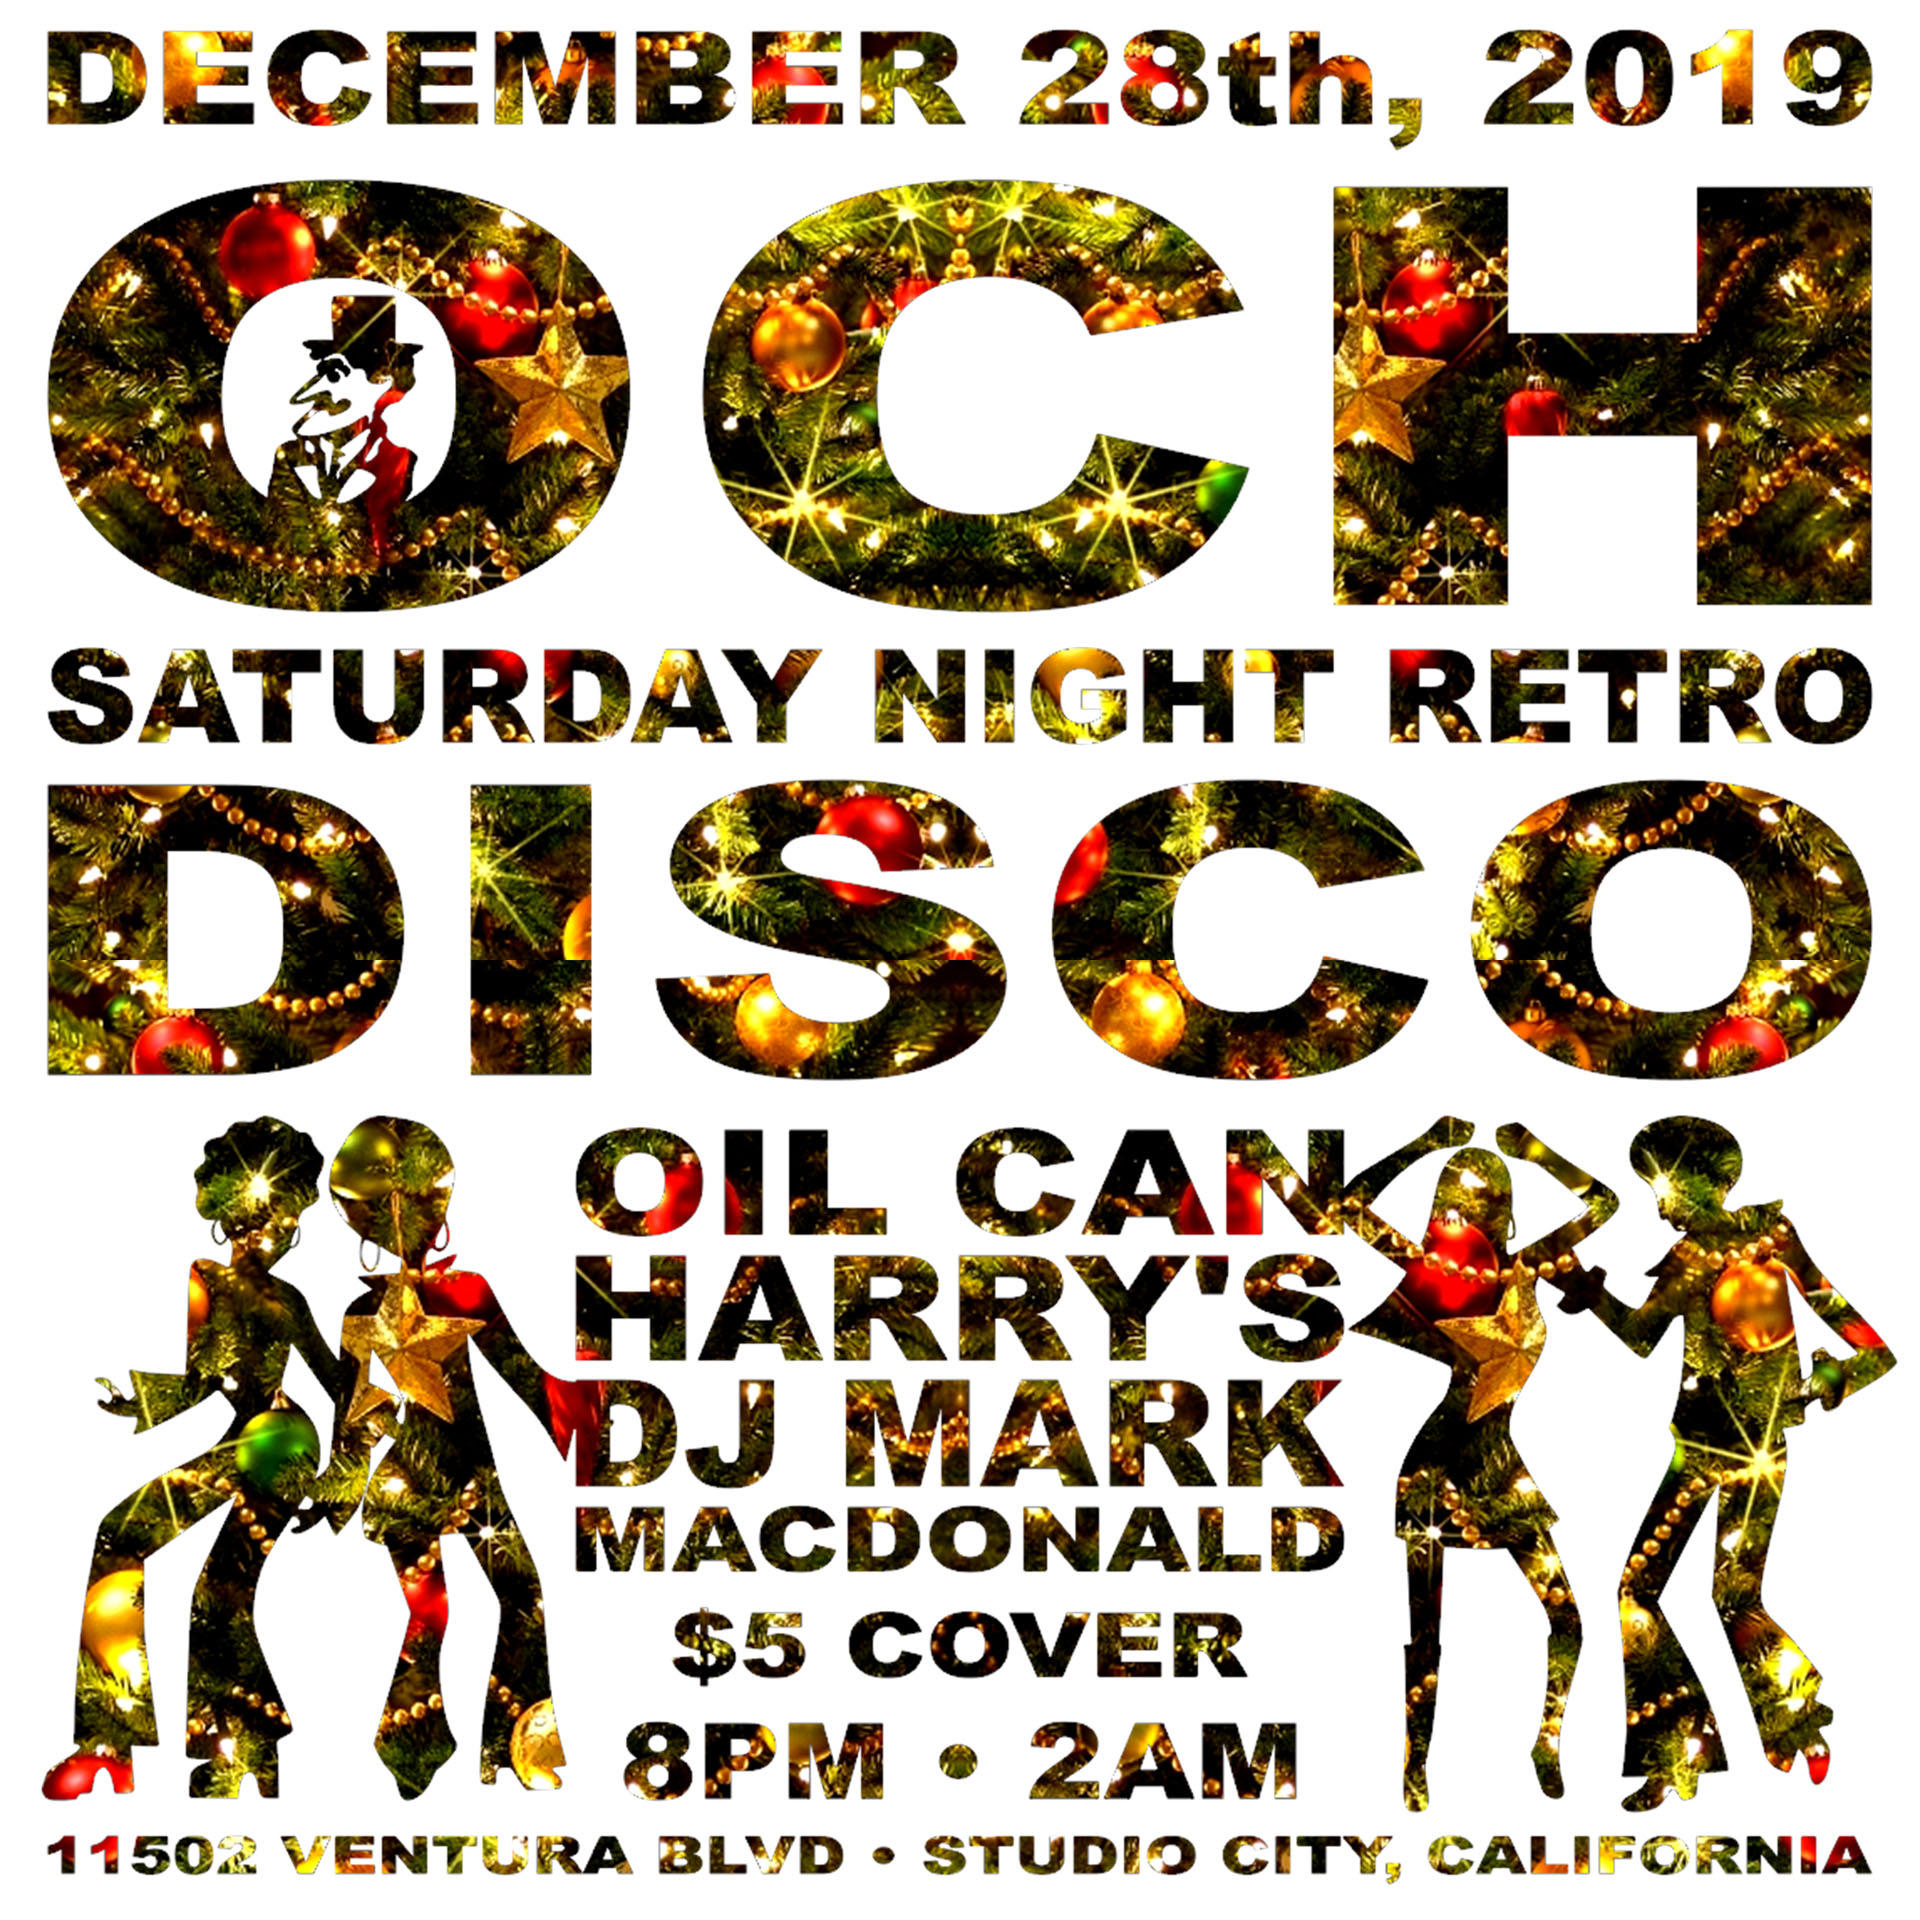 Oil Can Harry's Hosts DJ MARK MACDONALD from Las Vegas for RETRO DISCO: Saturday, December 28, 2019! 8:00 PM to 2:00 AM! $5.00 Cover.